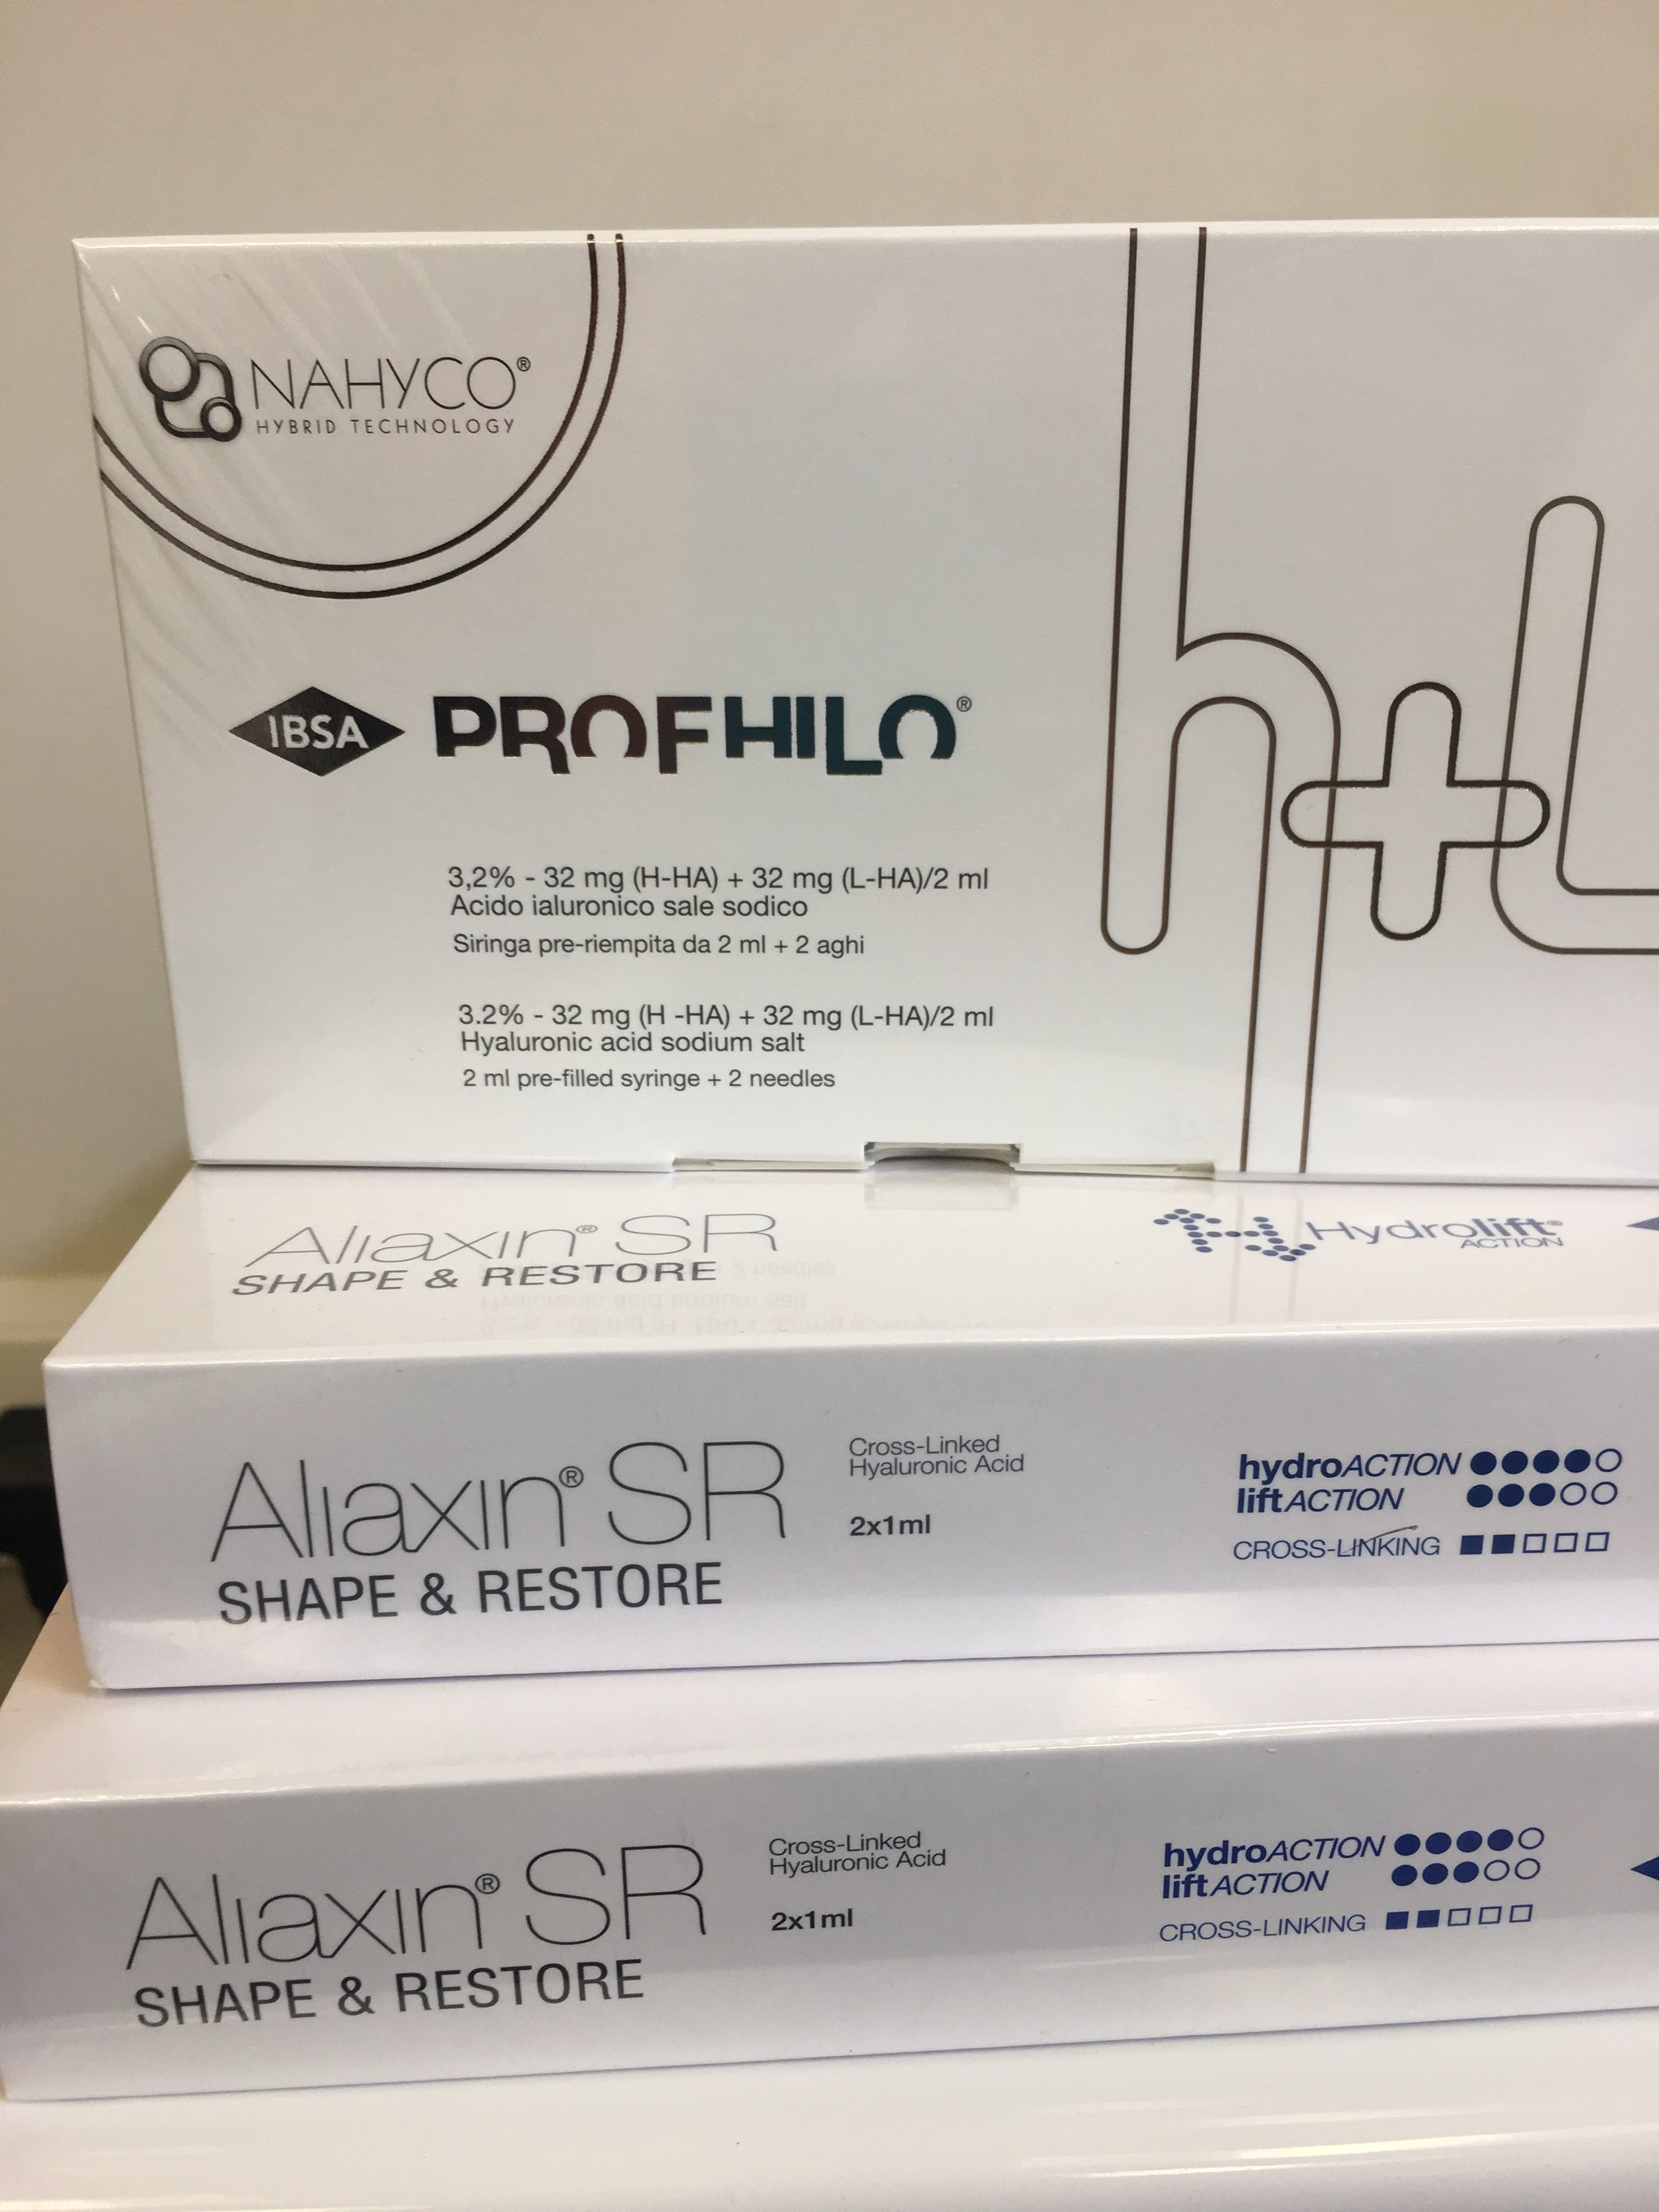 The products - Profhilo and Aliaxin Shape and Restore, that Dr Saira used in my neck